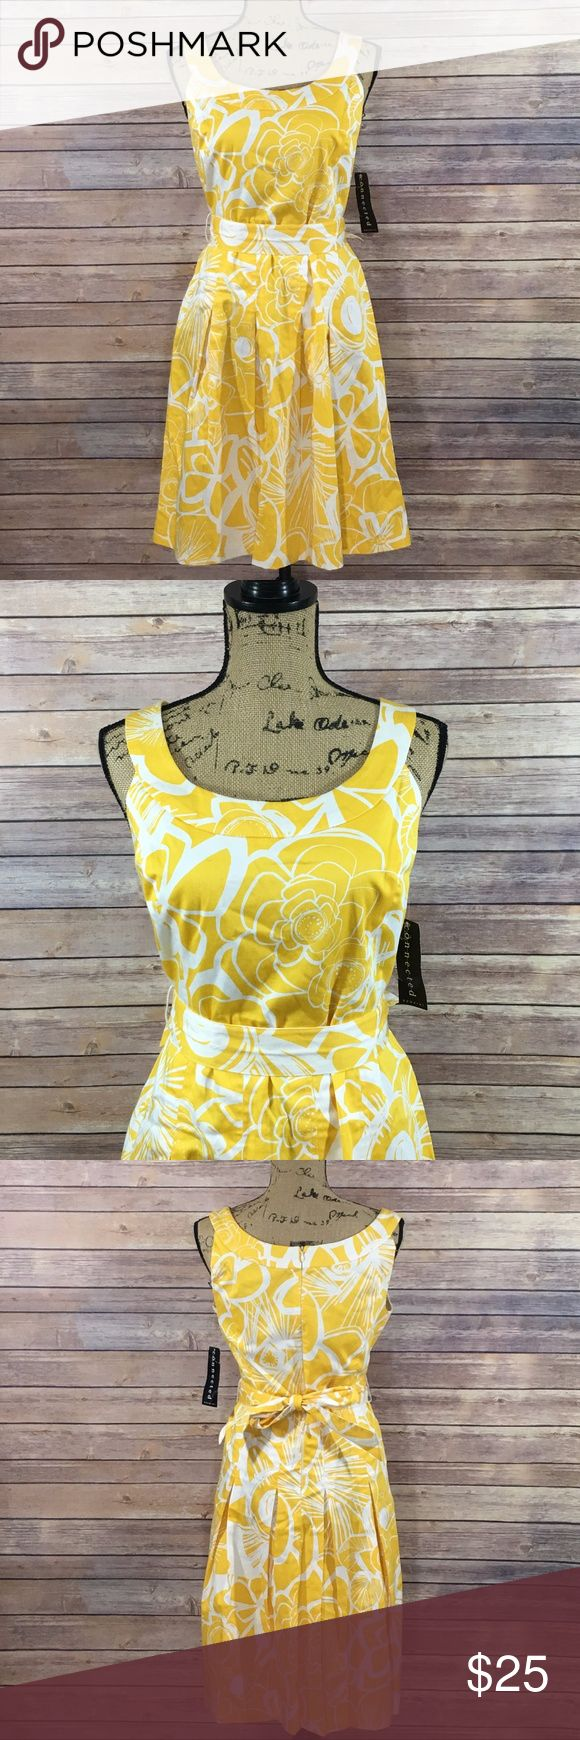 Connected Apparel Dress NEW Size 12 Connected Apparel Dress Yellow and White Print Comes with belt Brand New With Tags Connected Apparel Dresses